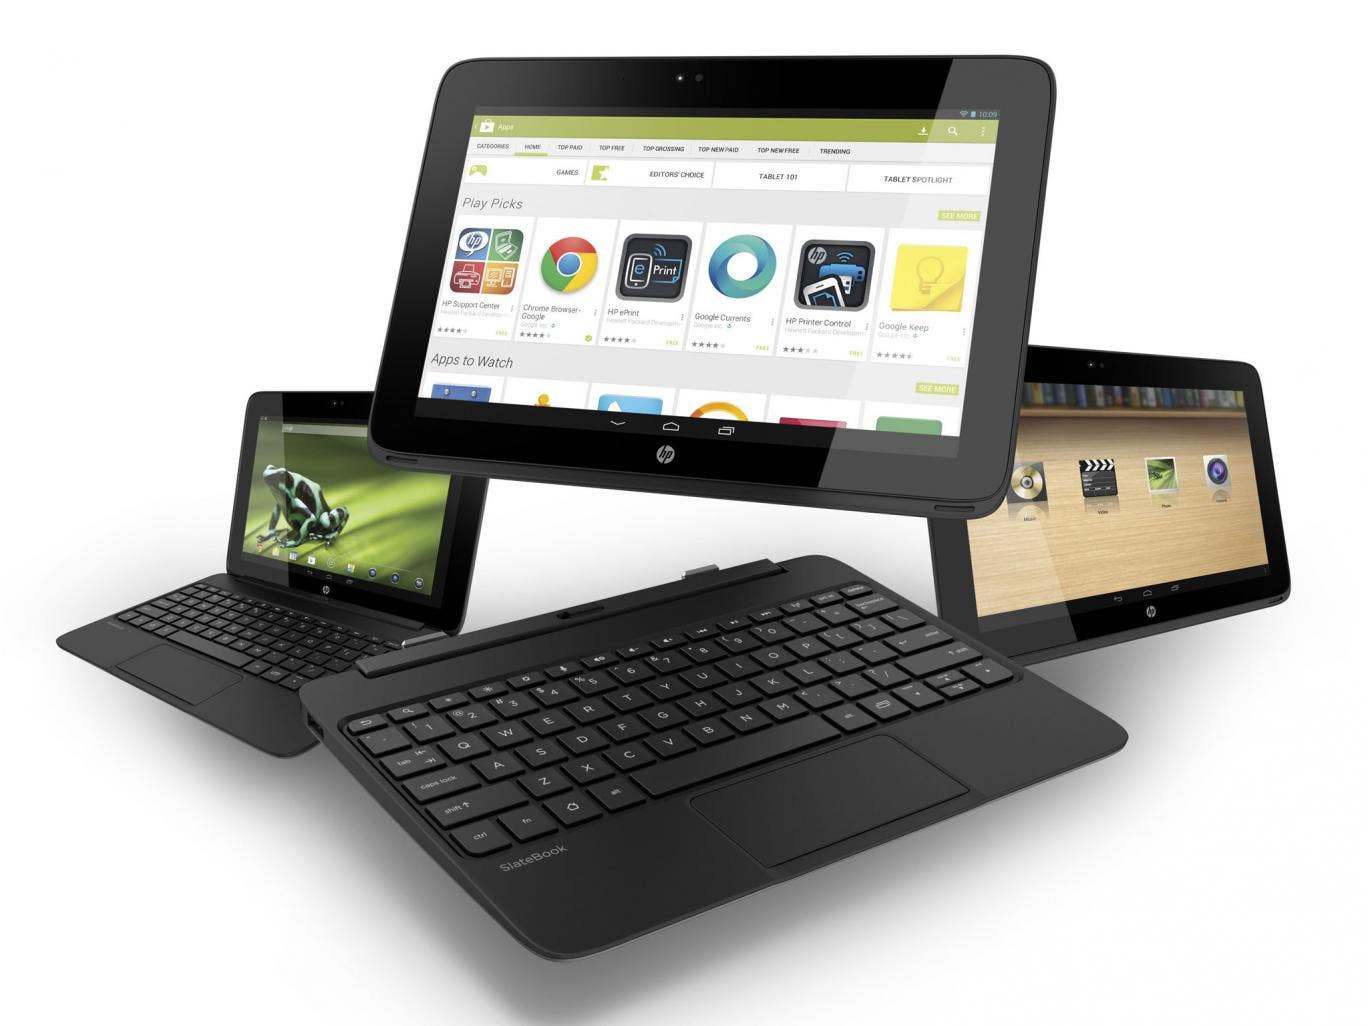 The HP Slatebook X2 makes a great companion device if you're moving about during the day